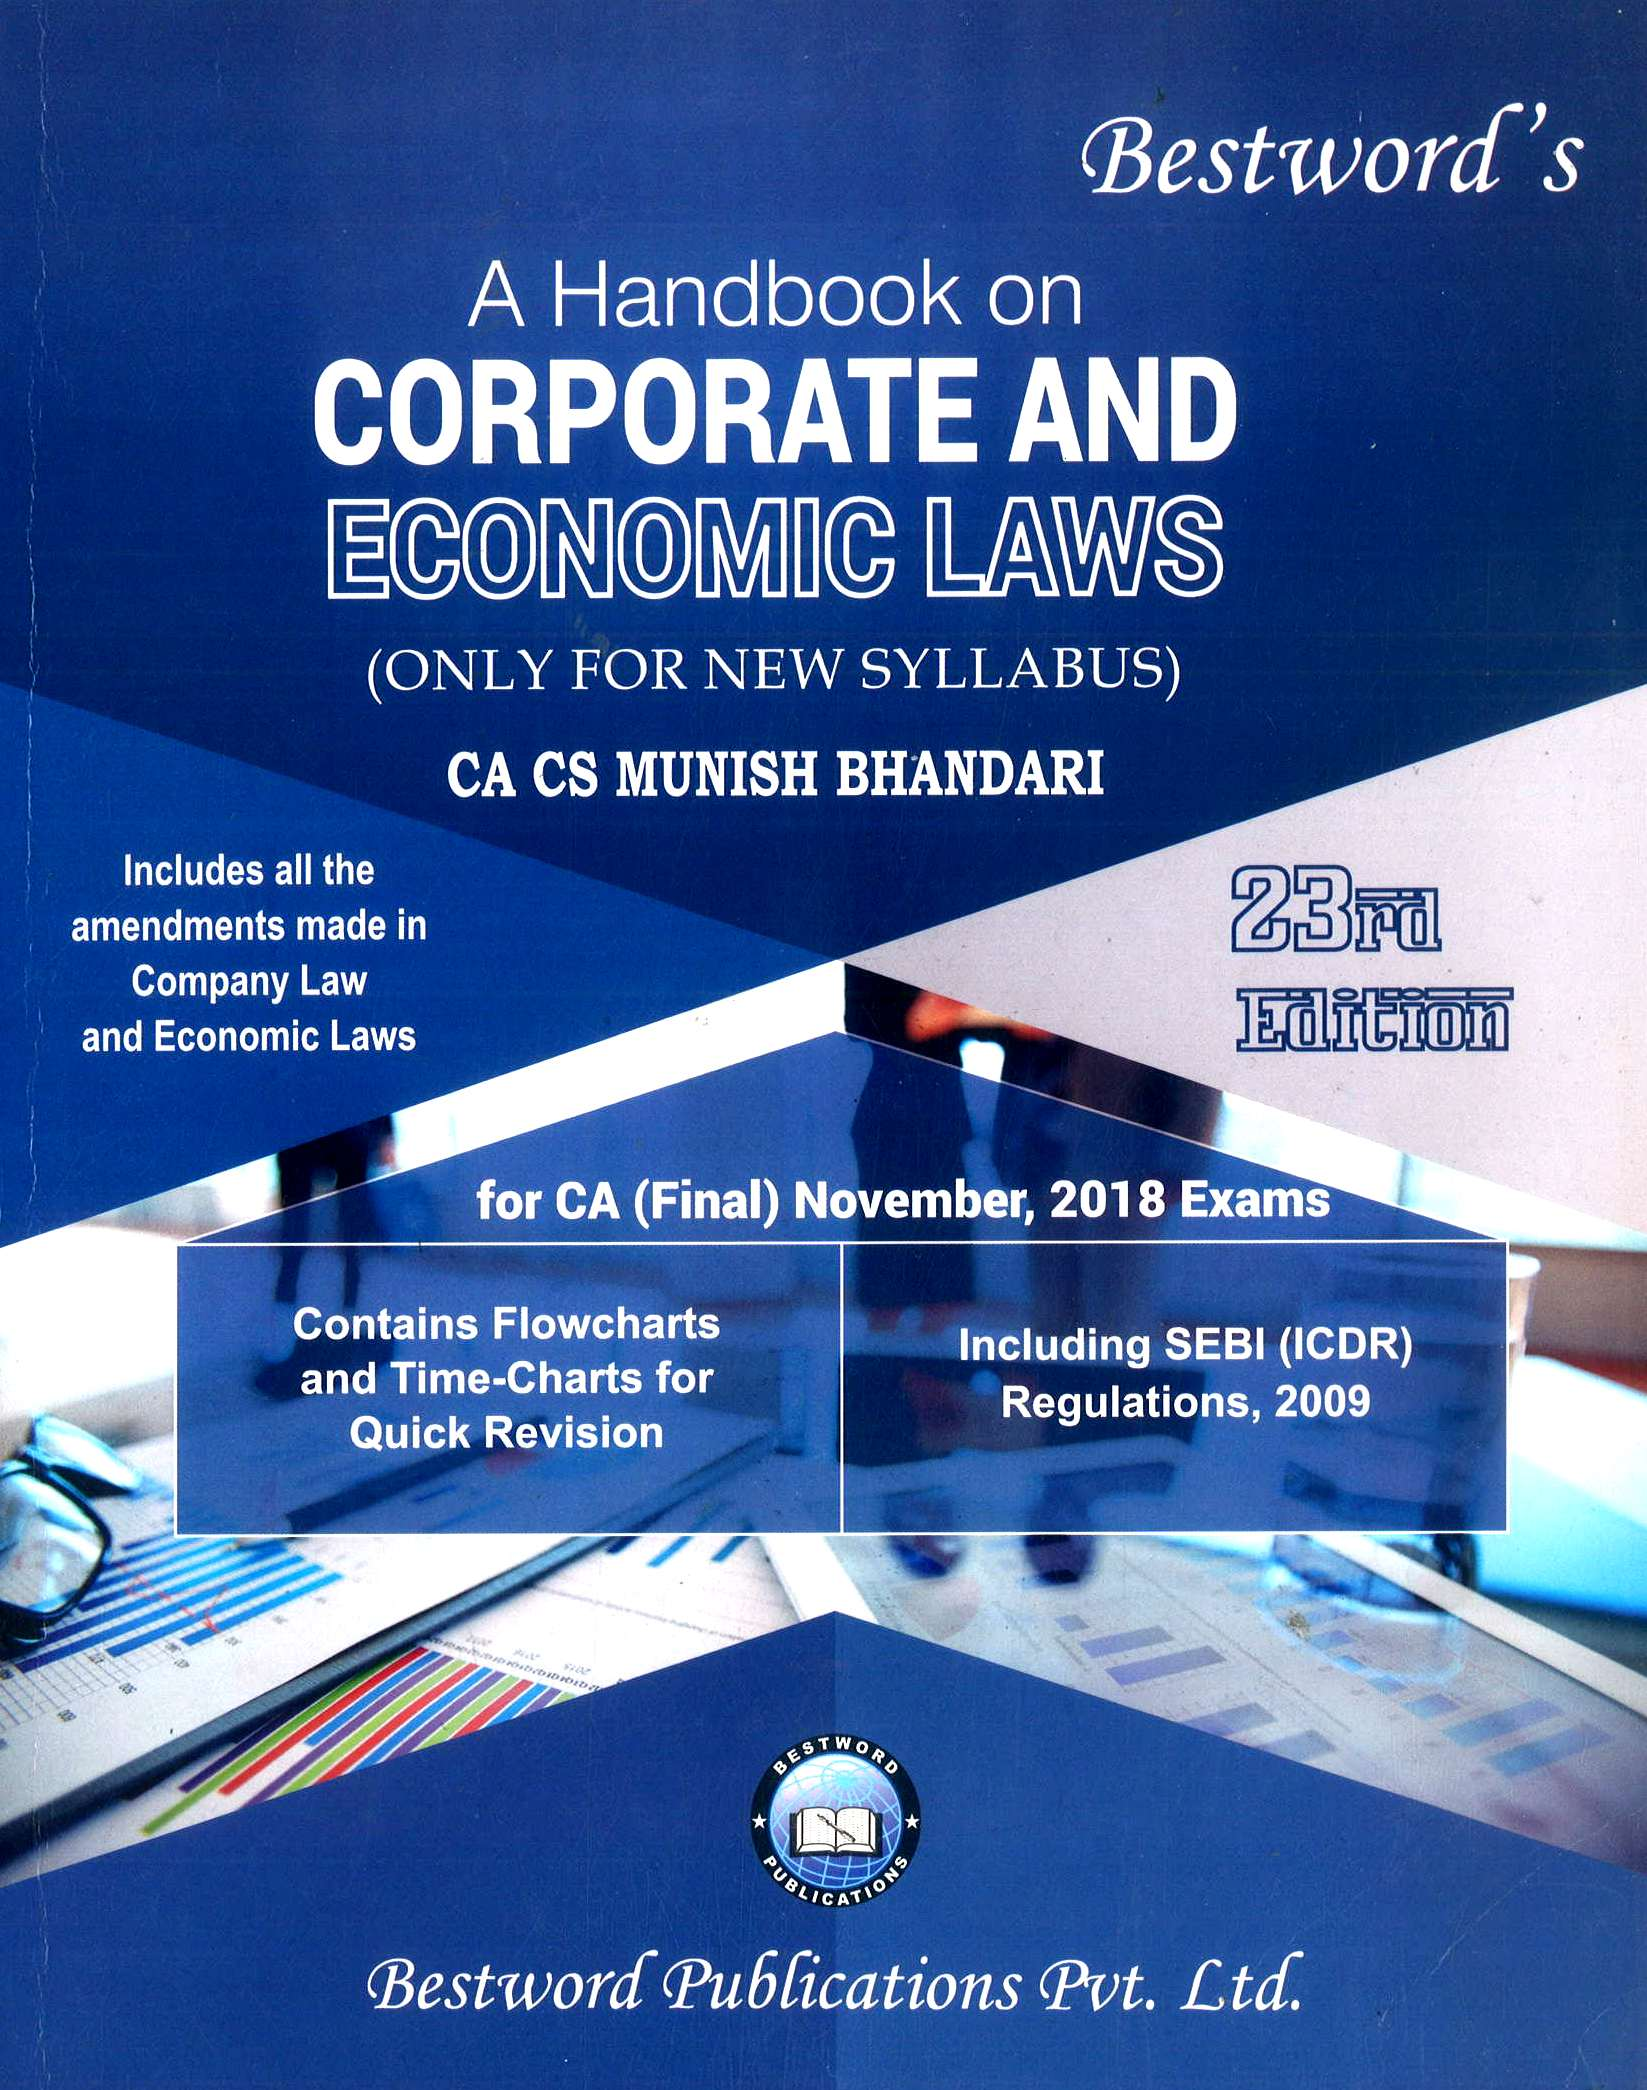 Bestword CA Final Handbook on Corporate and Economic Laws New Syllabus By Munish Bhandari Applicable for November 2018 Exam